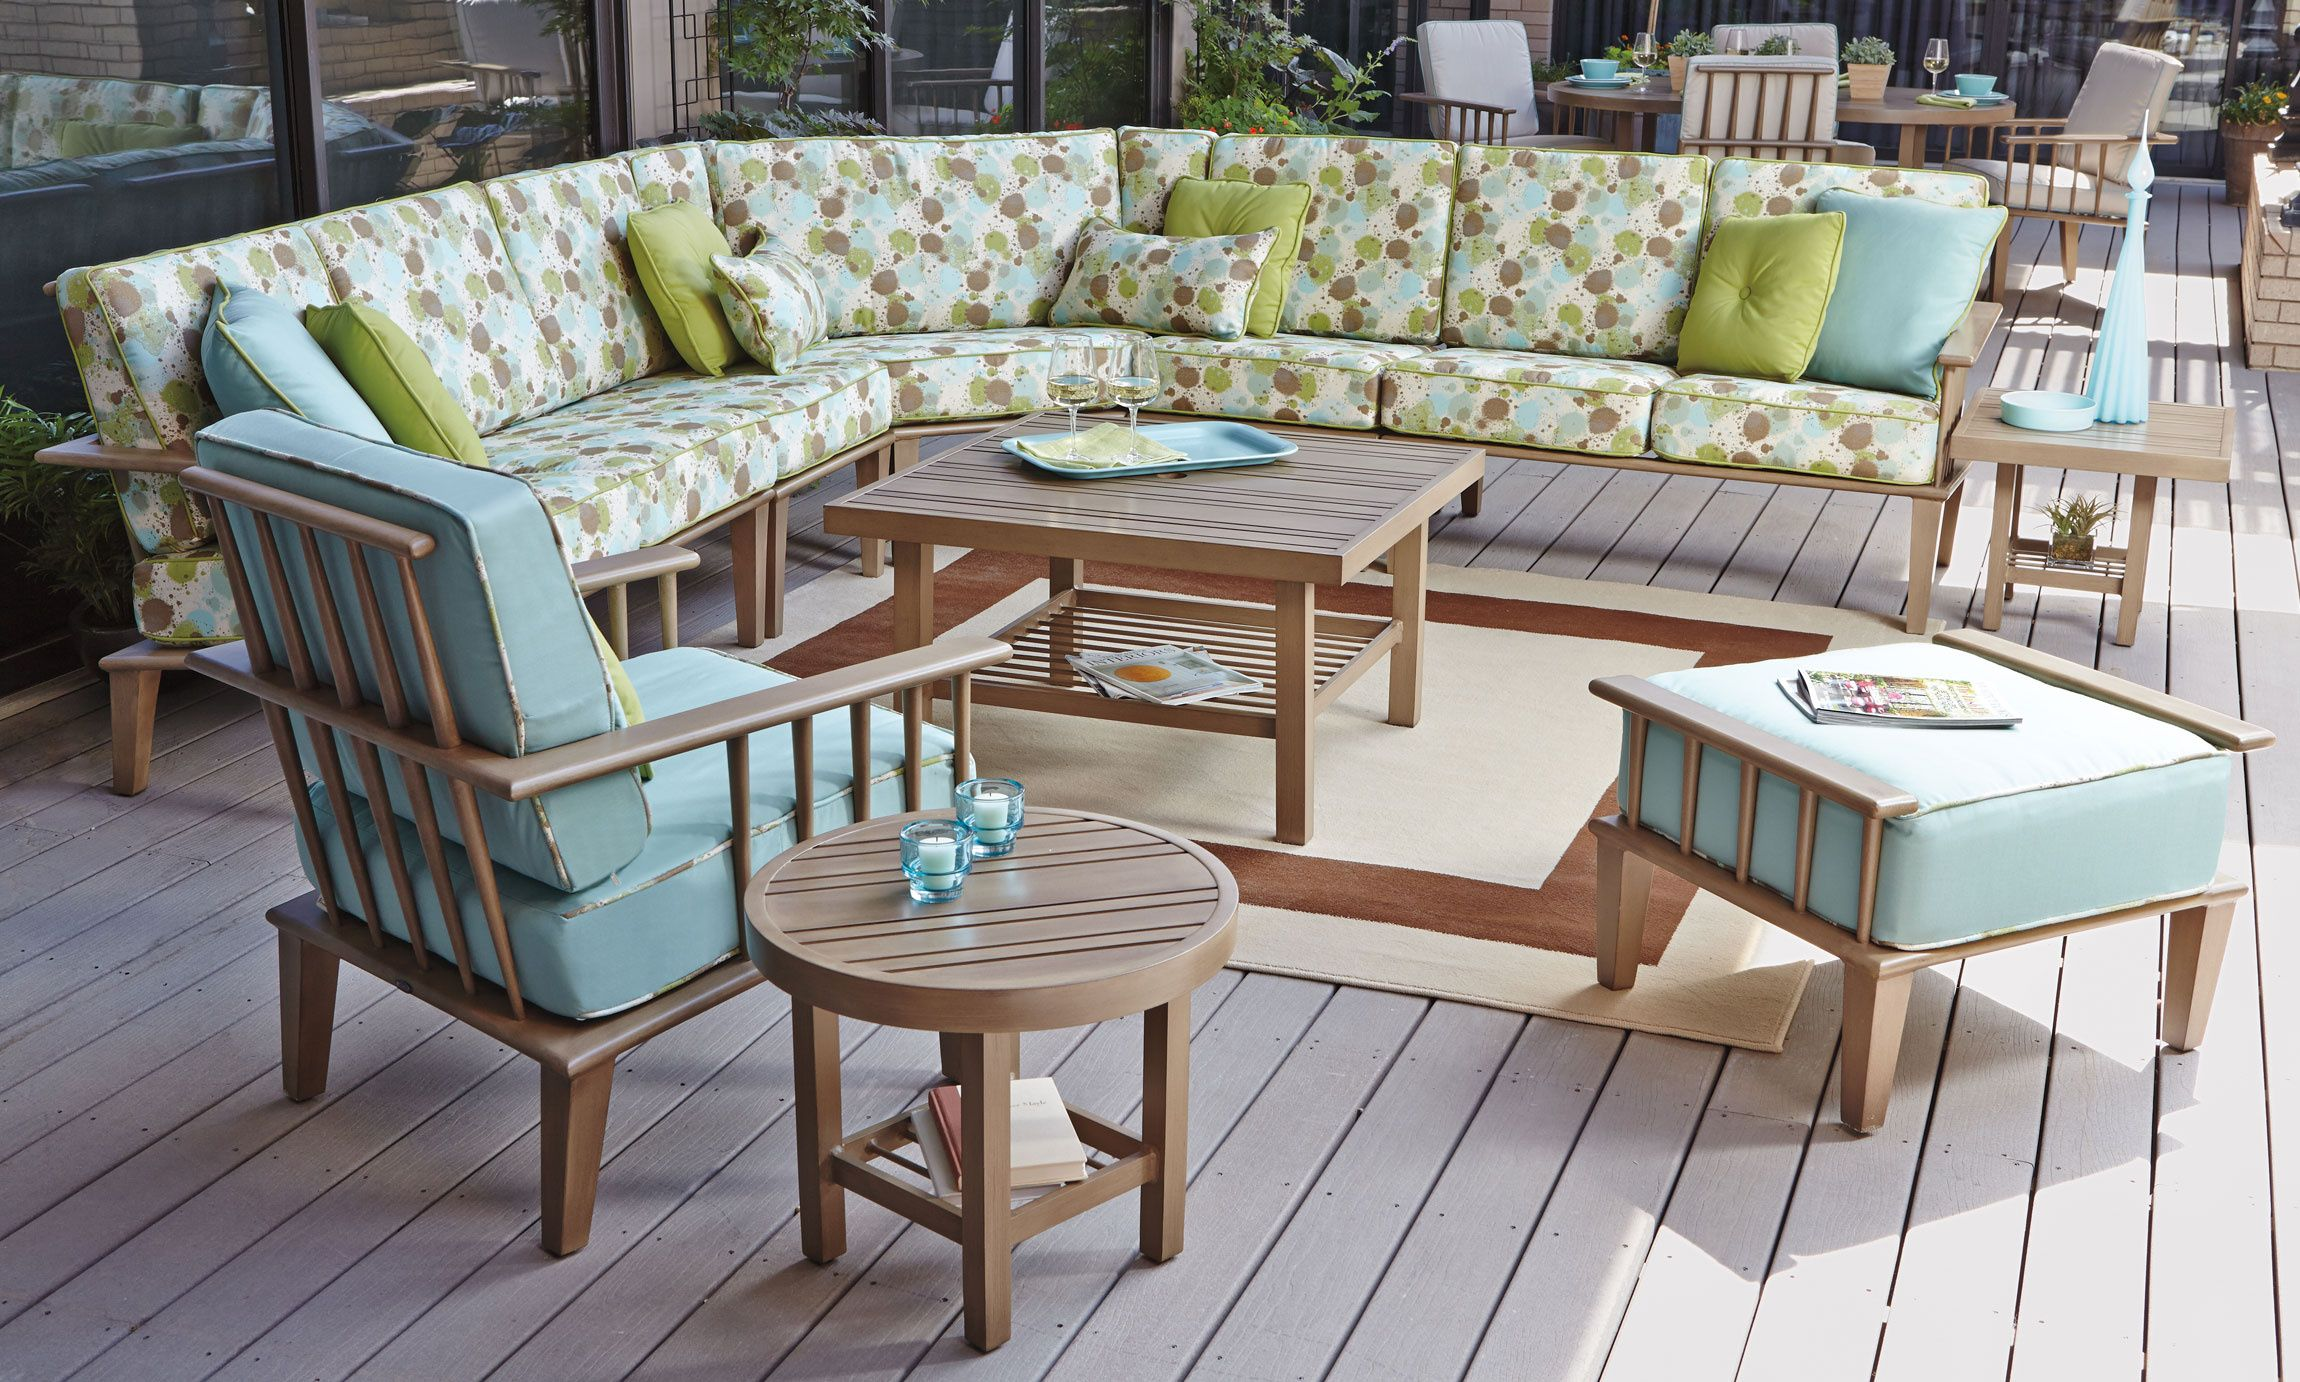 Hospitality Outdoor Furniture   Best Way To Paint Wood Furniture Check More  At Http://cacophonouscreations.com/hospitality Outdoor Furniture/